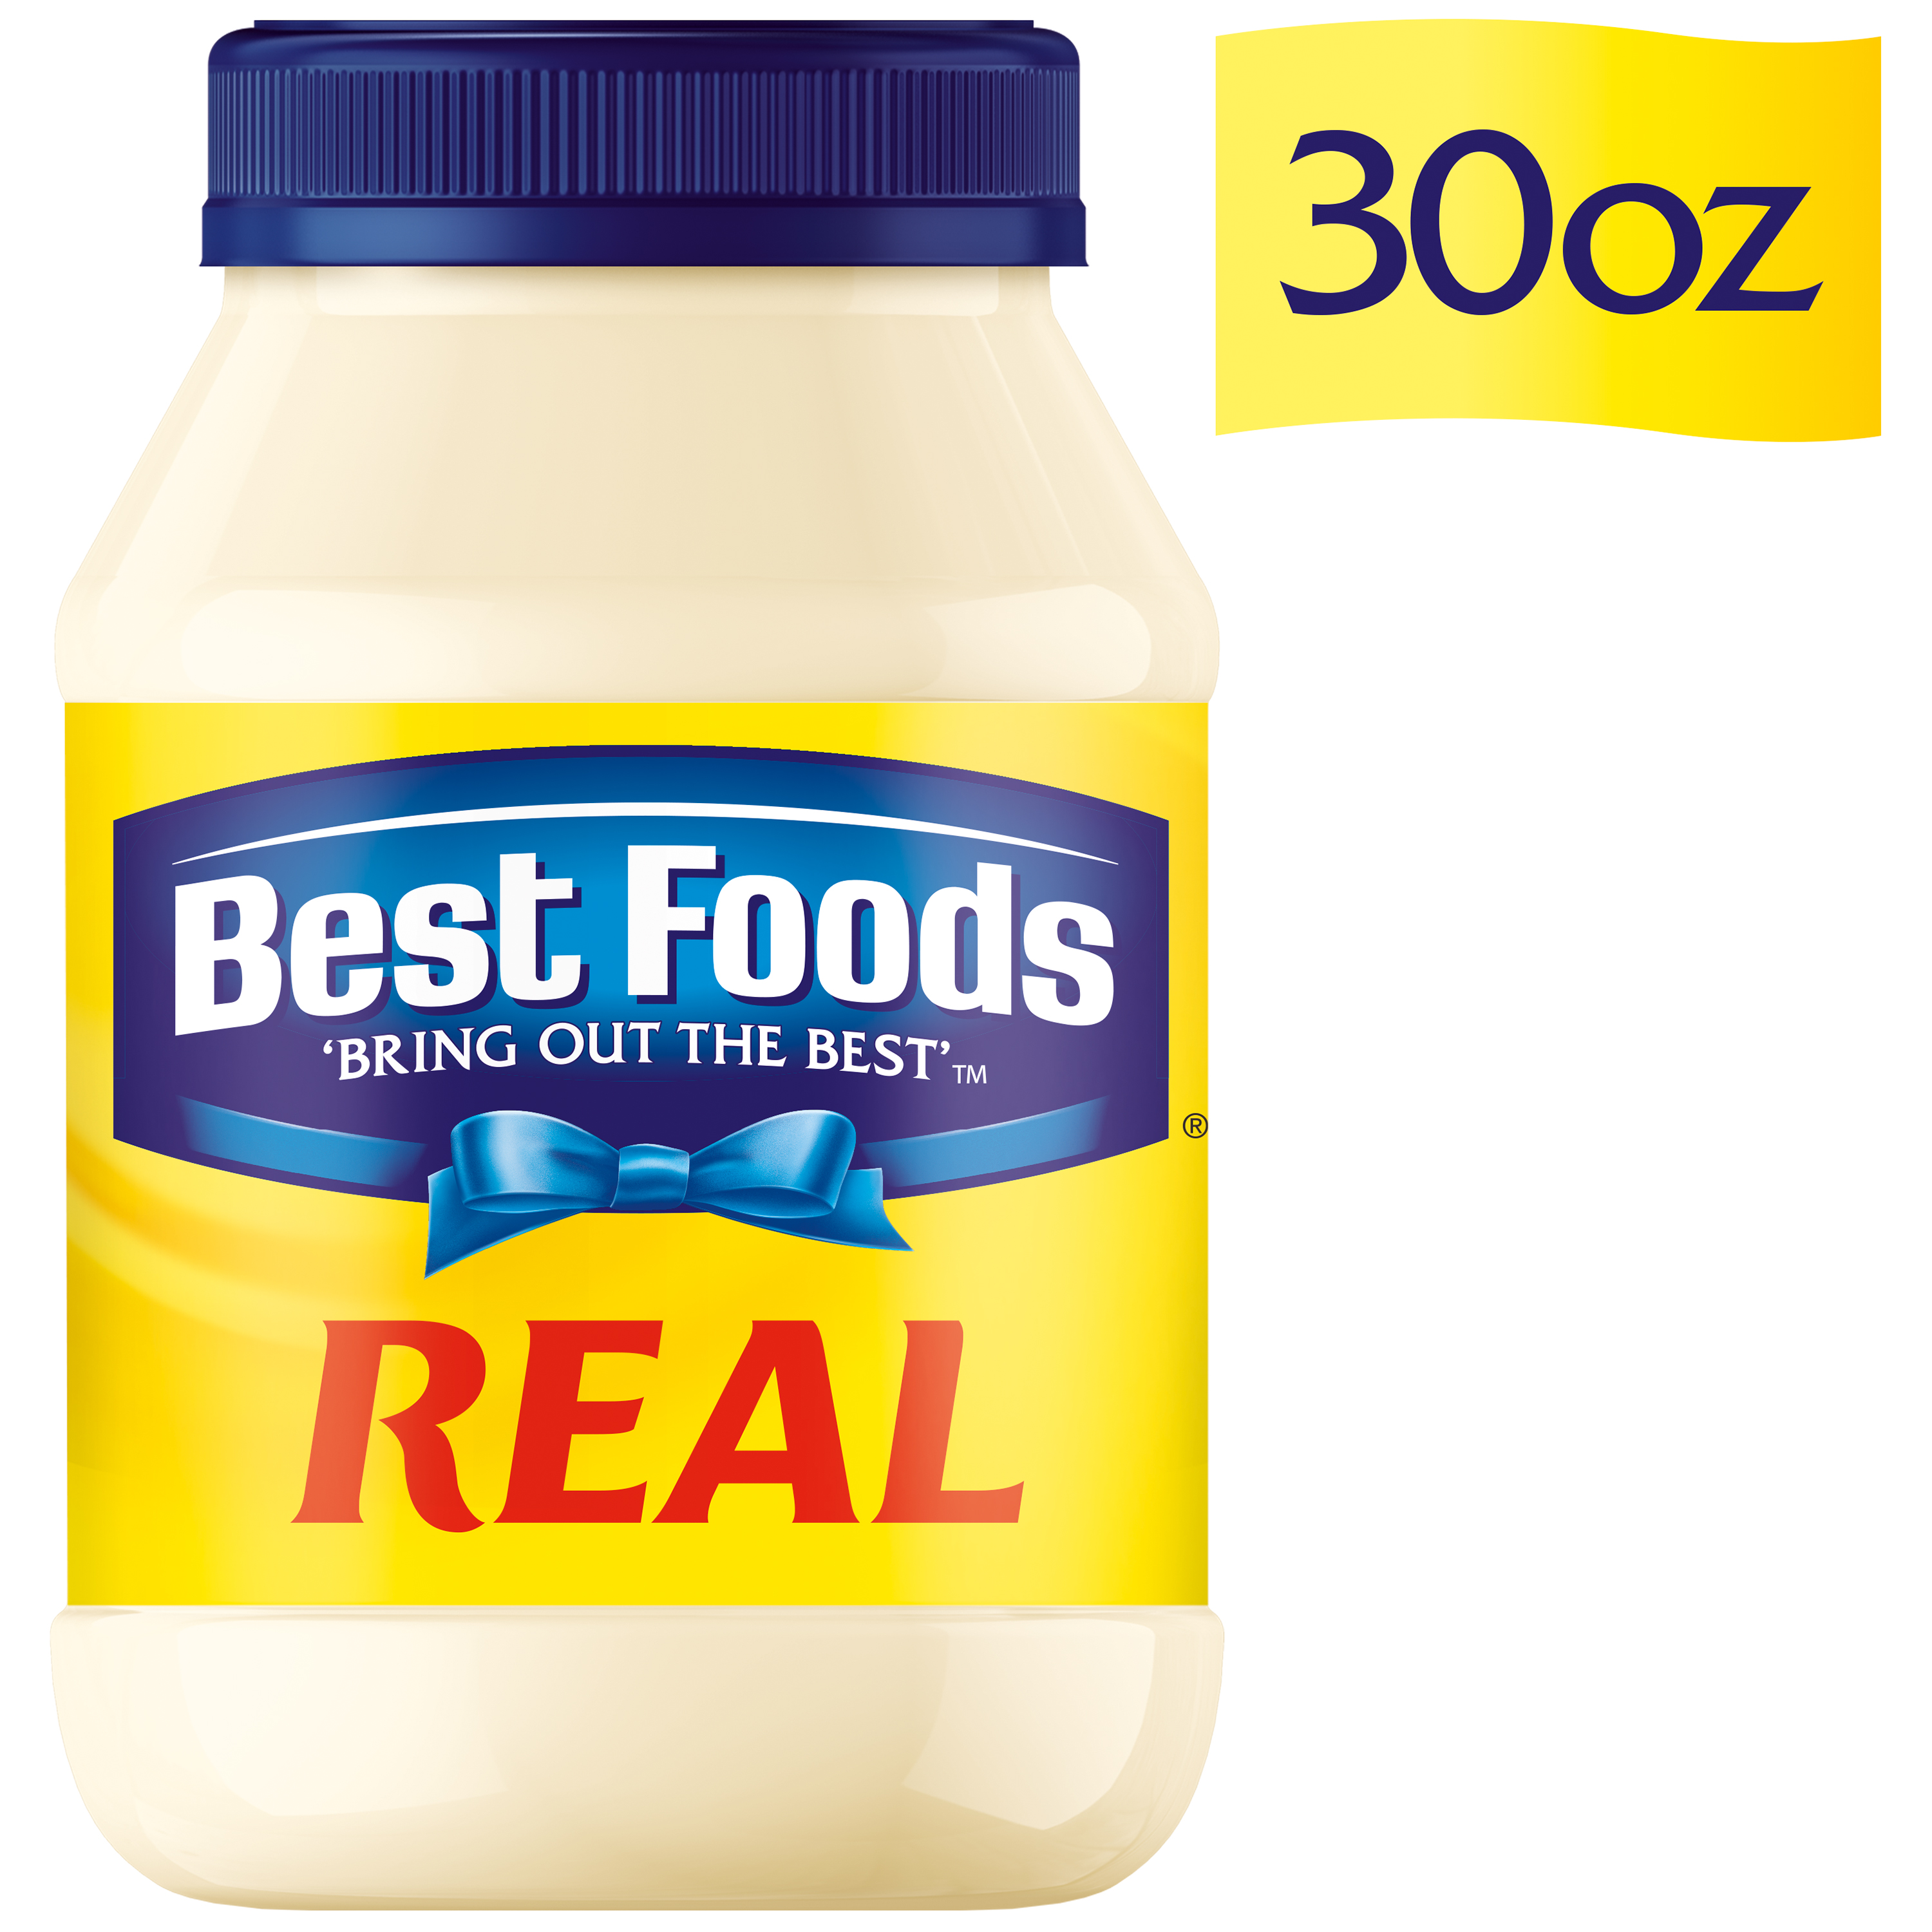 Best Foods Real Mayonnaise, 30 oz